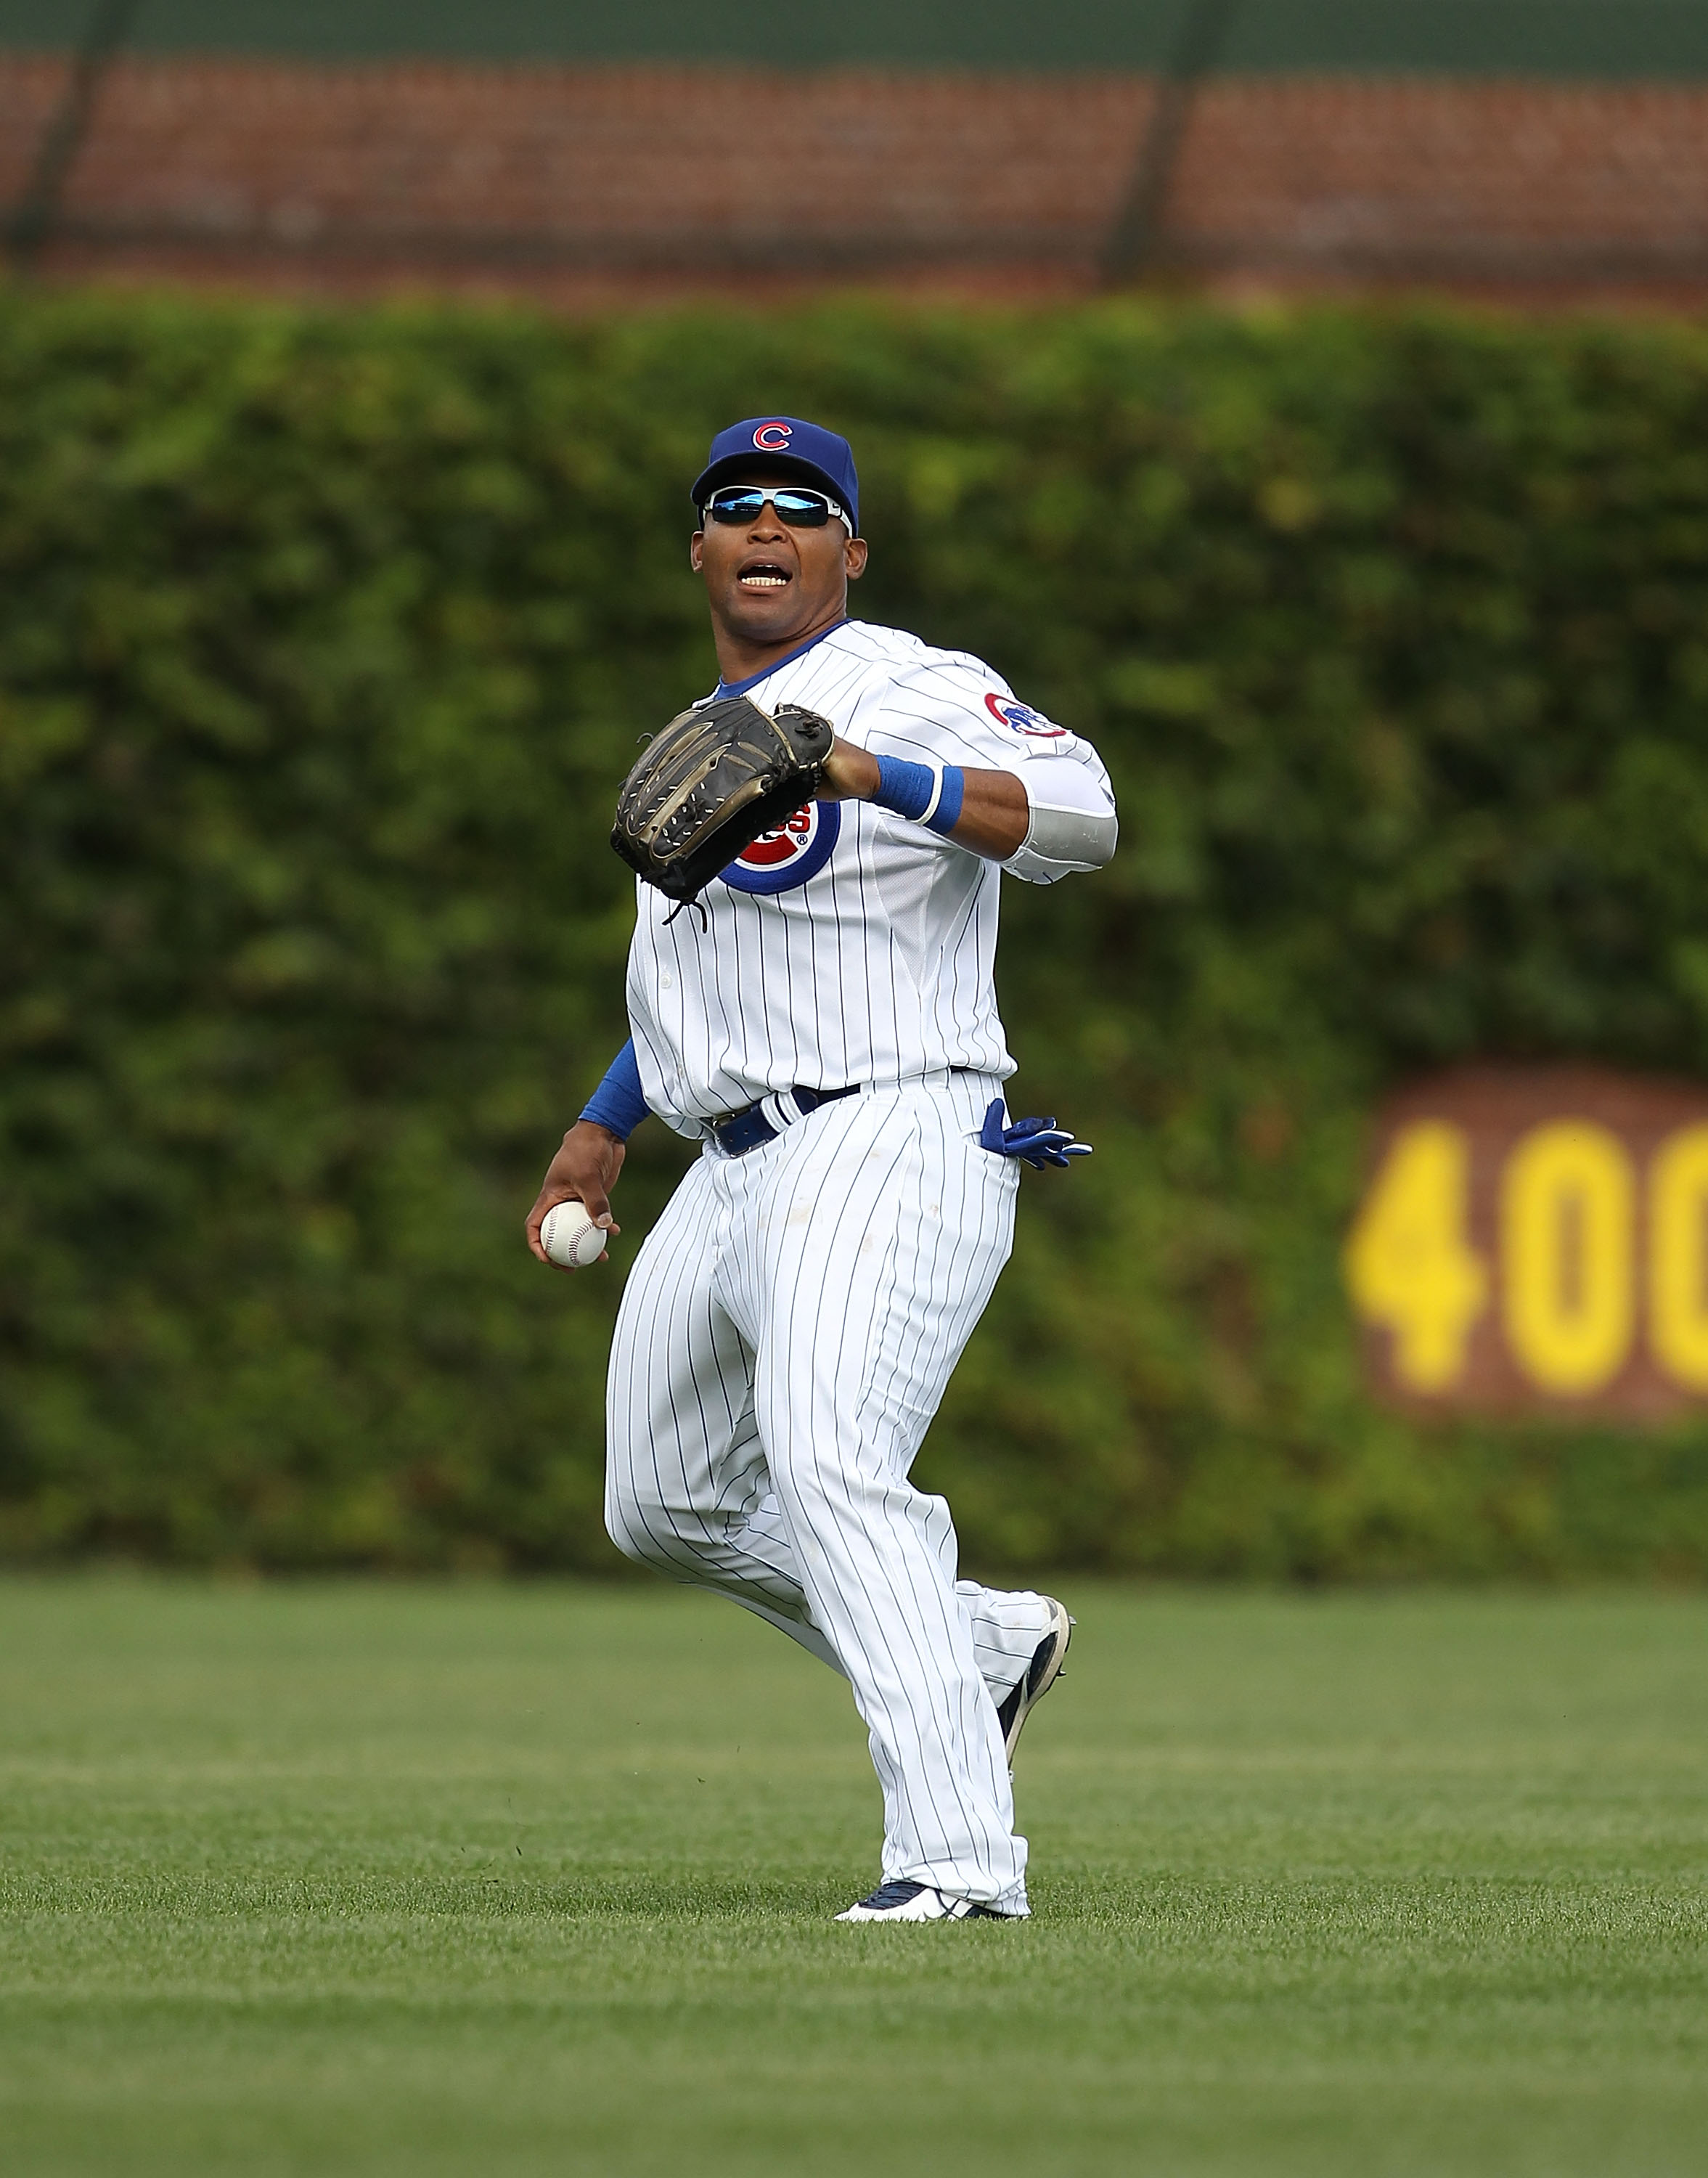 CHICAGO - SEPTEMBER 05: Marlon Byrd #24 of the Chicago Cubs prepares to throw the ball to the infield against the New York Mets at Wrigley Field on September 5, 2010 in Chicago, Illinois. The Mets defeated the Cubs 18-5. (Photo by Jonathan Daniel/Getty Im